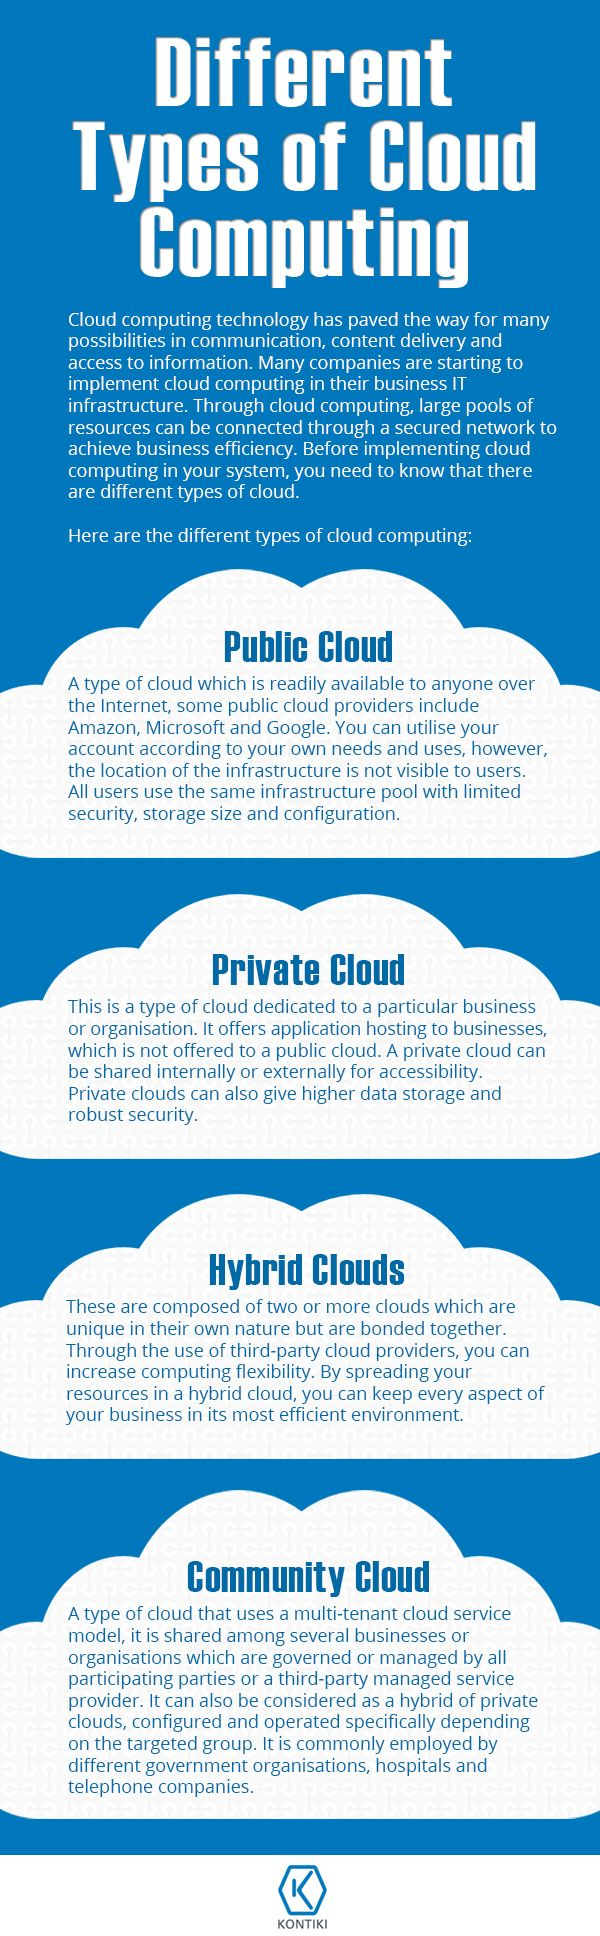 Many companies are starting to implement cloud computing in their business IT infrastructure. Know the different types of Cloud Computing through this infographic.  http://www.kontiki.com/